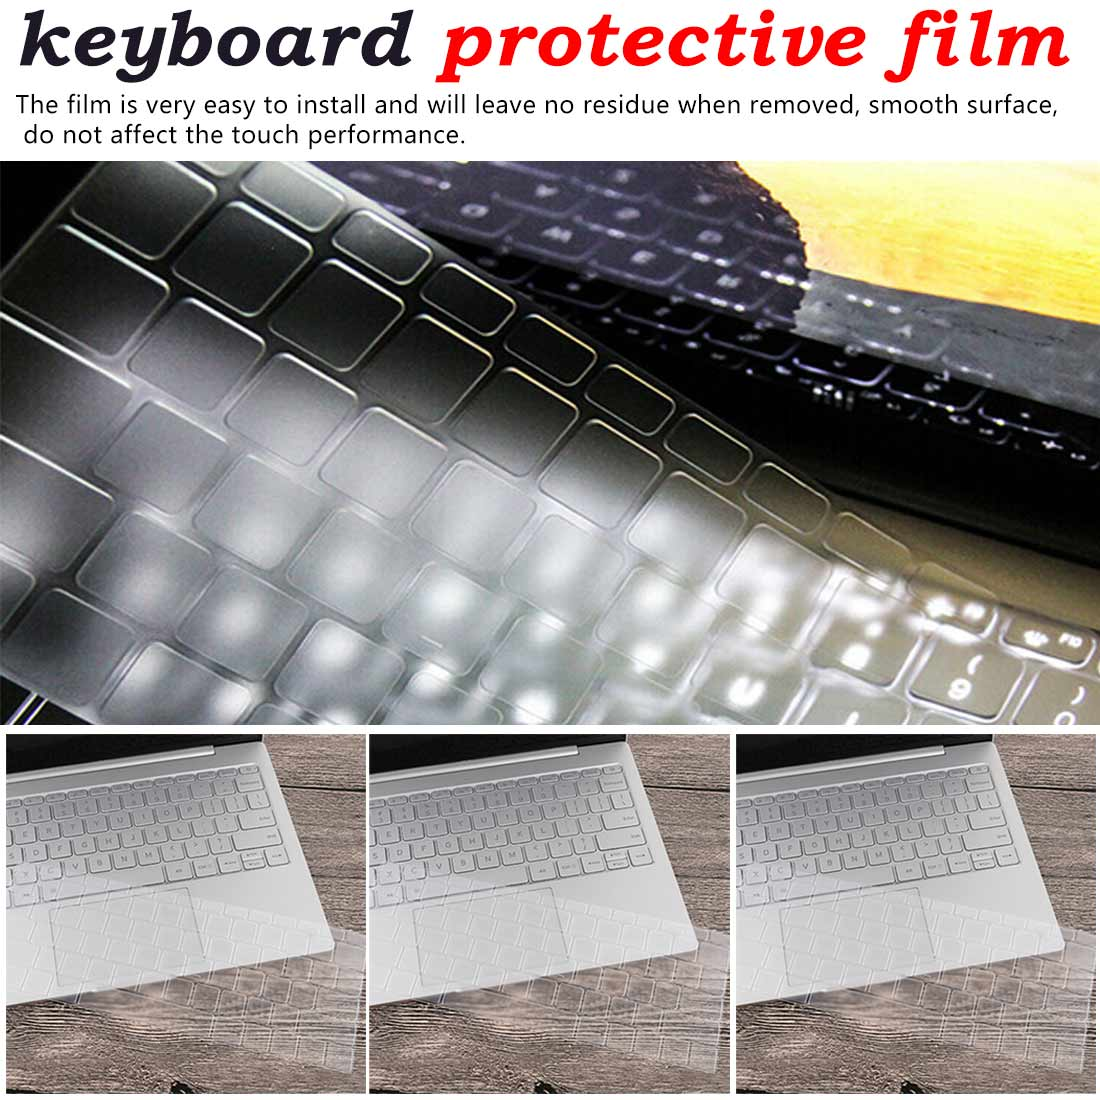 Keyboard Stickers Silicone Spanish Keyboard Cover for <font><b>Xiaomi</b></font> <font><b>Mi</b></font> <font><b>Notebook</b></font> Air 12.5 13.3 <font><b>Pro</b></font> <font><b>15.6</b></font> Skins Protector Film image